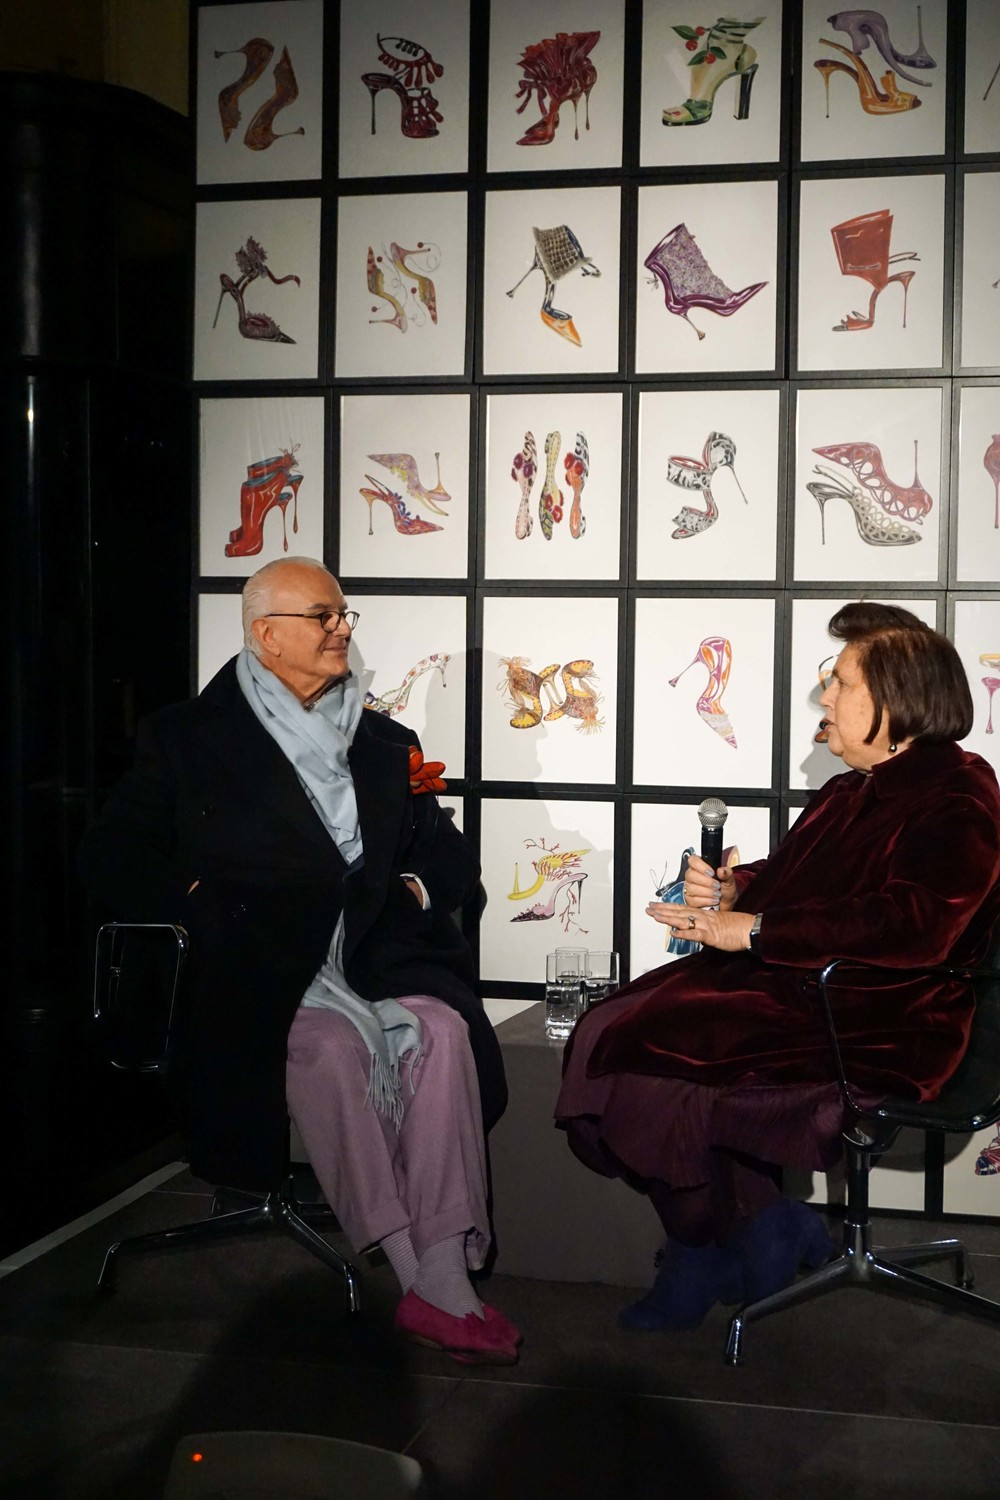 Manolo Blahnik speaking at the Press Release in the Burlington Arcade, Mayfair.